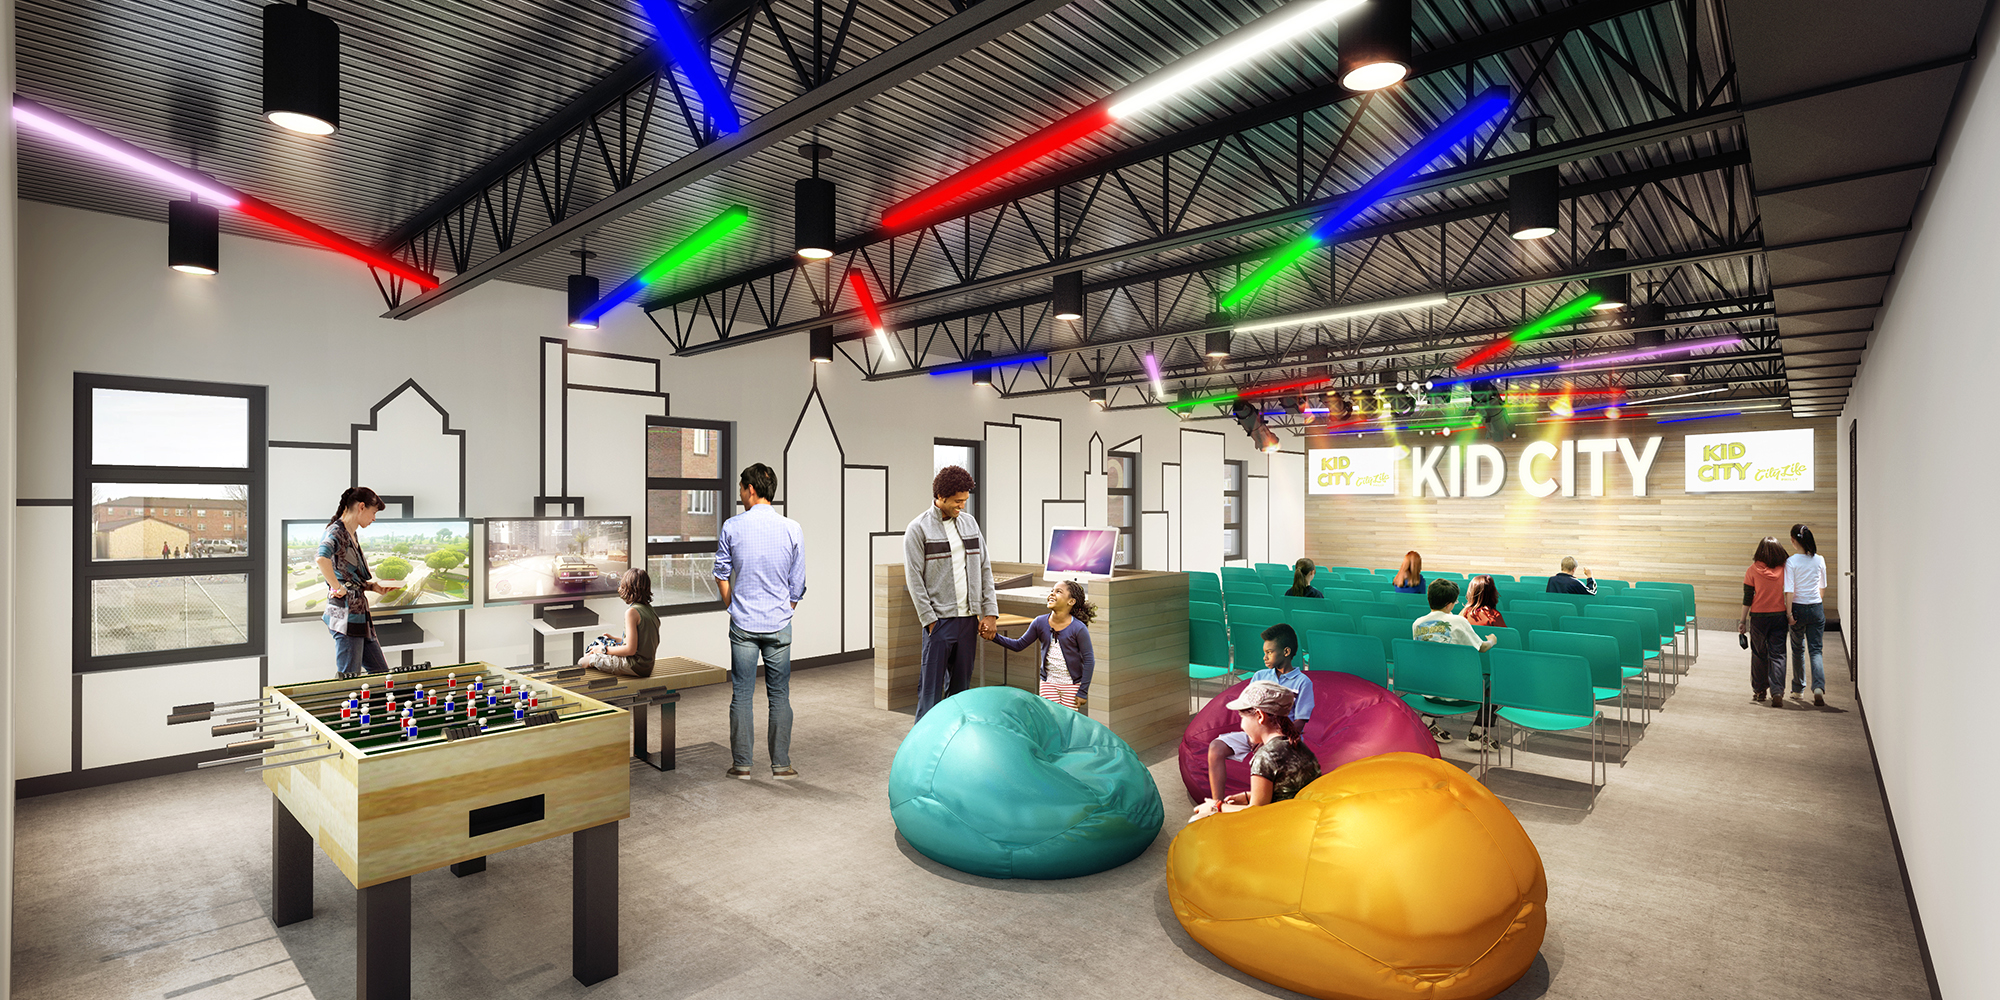 Future City Life Kids Space